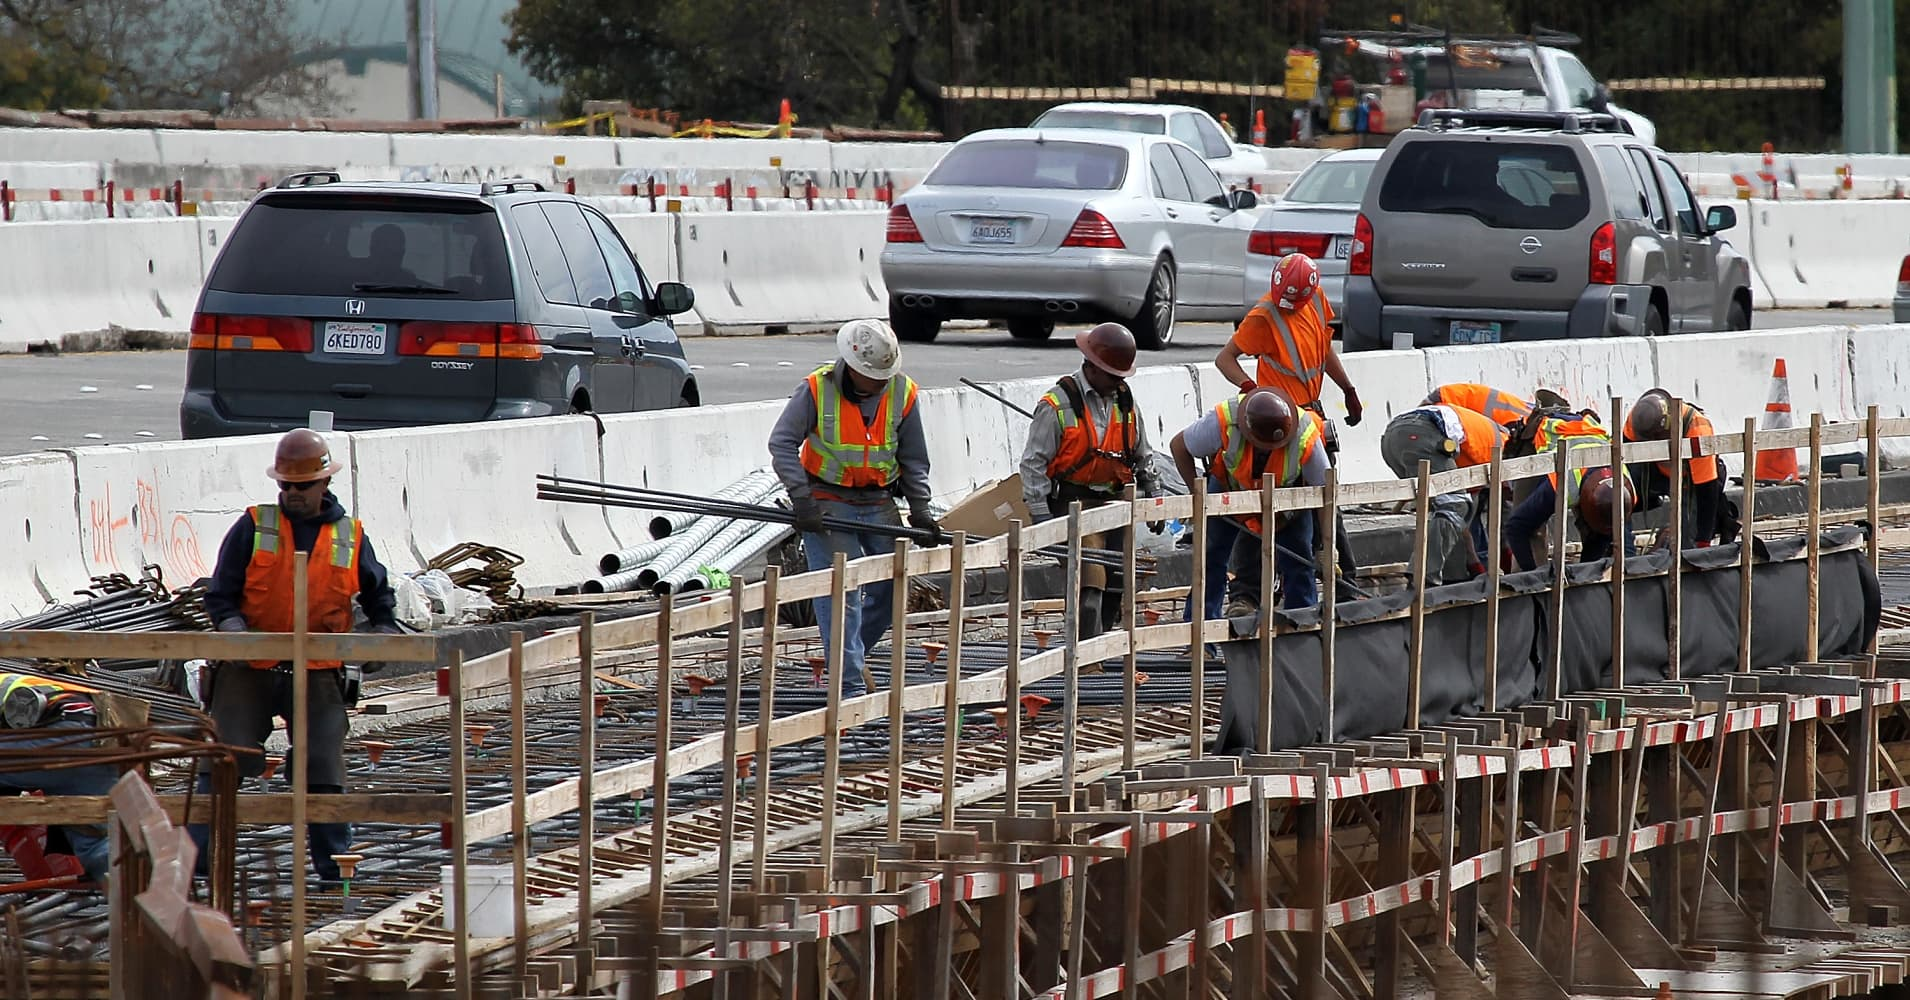 Engineers give America's infrastructure a near failing grade